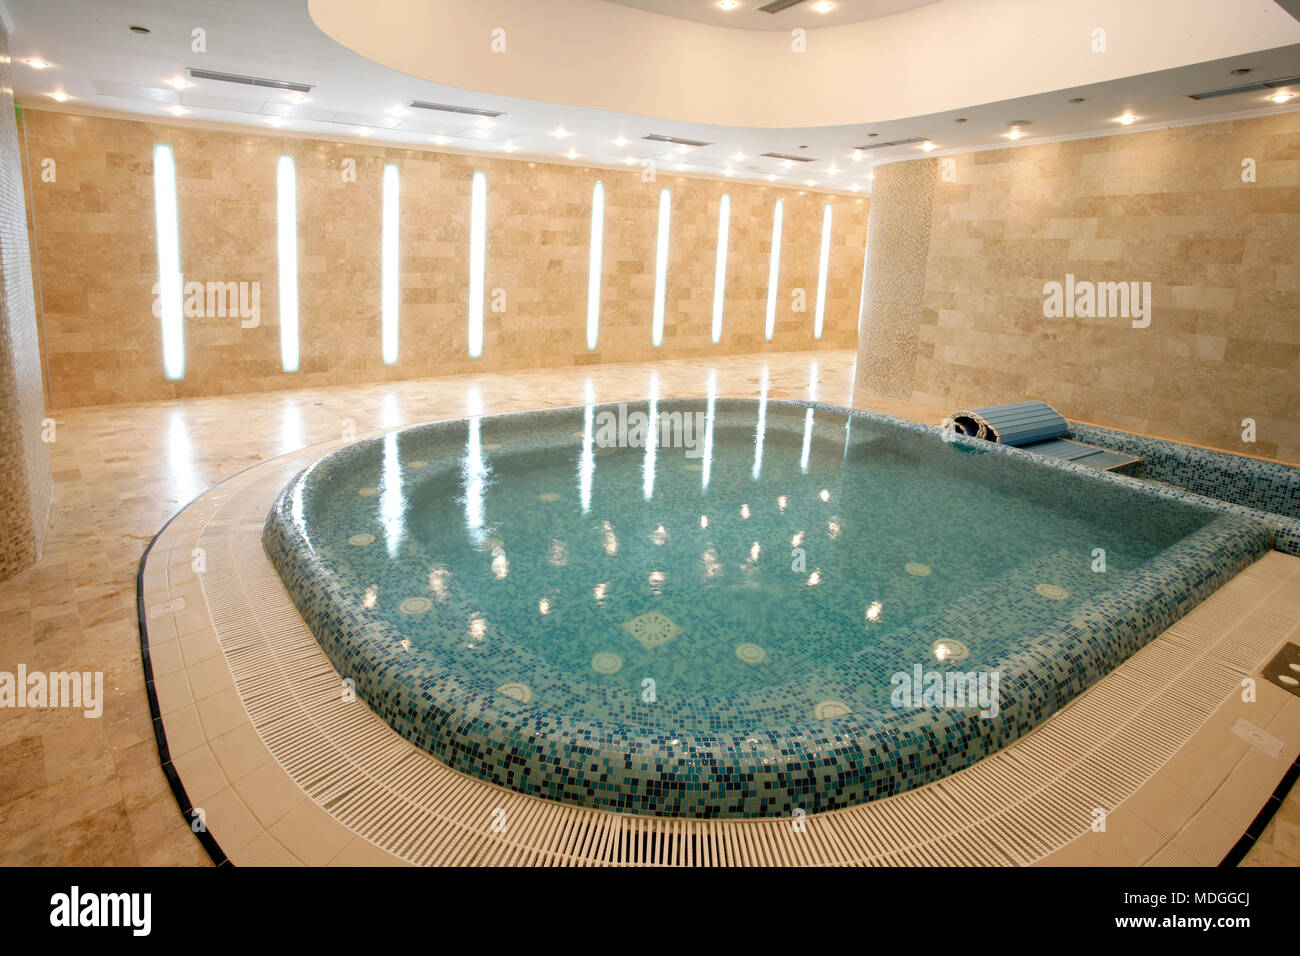 Jacuzzi pool in a modern hotel Stock Photo: 180458338 - Alamy